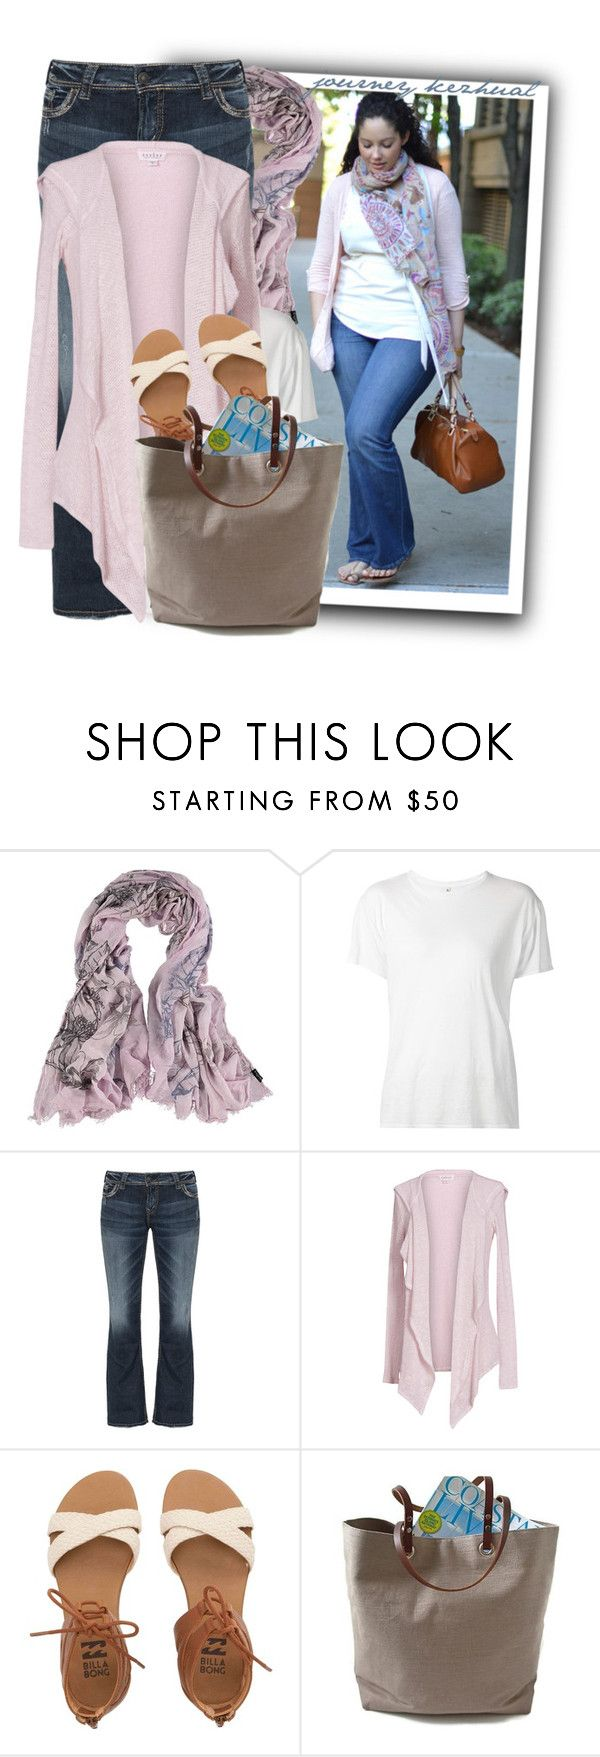 """Fraas Modal Scarf for Women"" by tasha1973 ❤ liked on Polyvore featuring Fraas, R13, Silver Jeans Co., Velvet by Graham & Spencer, Billabong and Independent Reign"